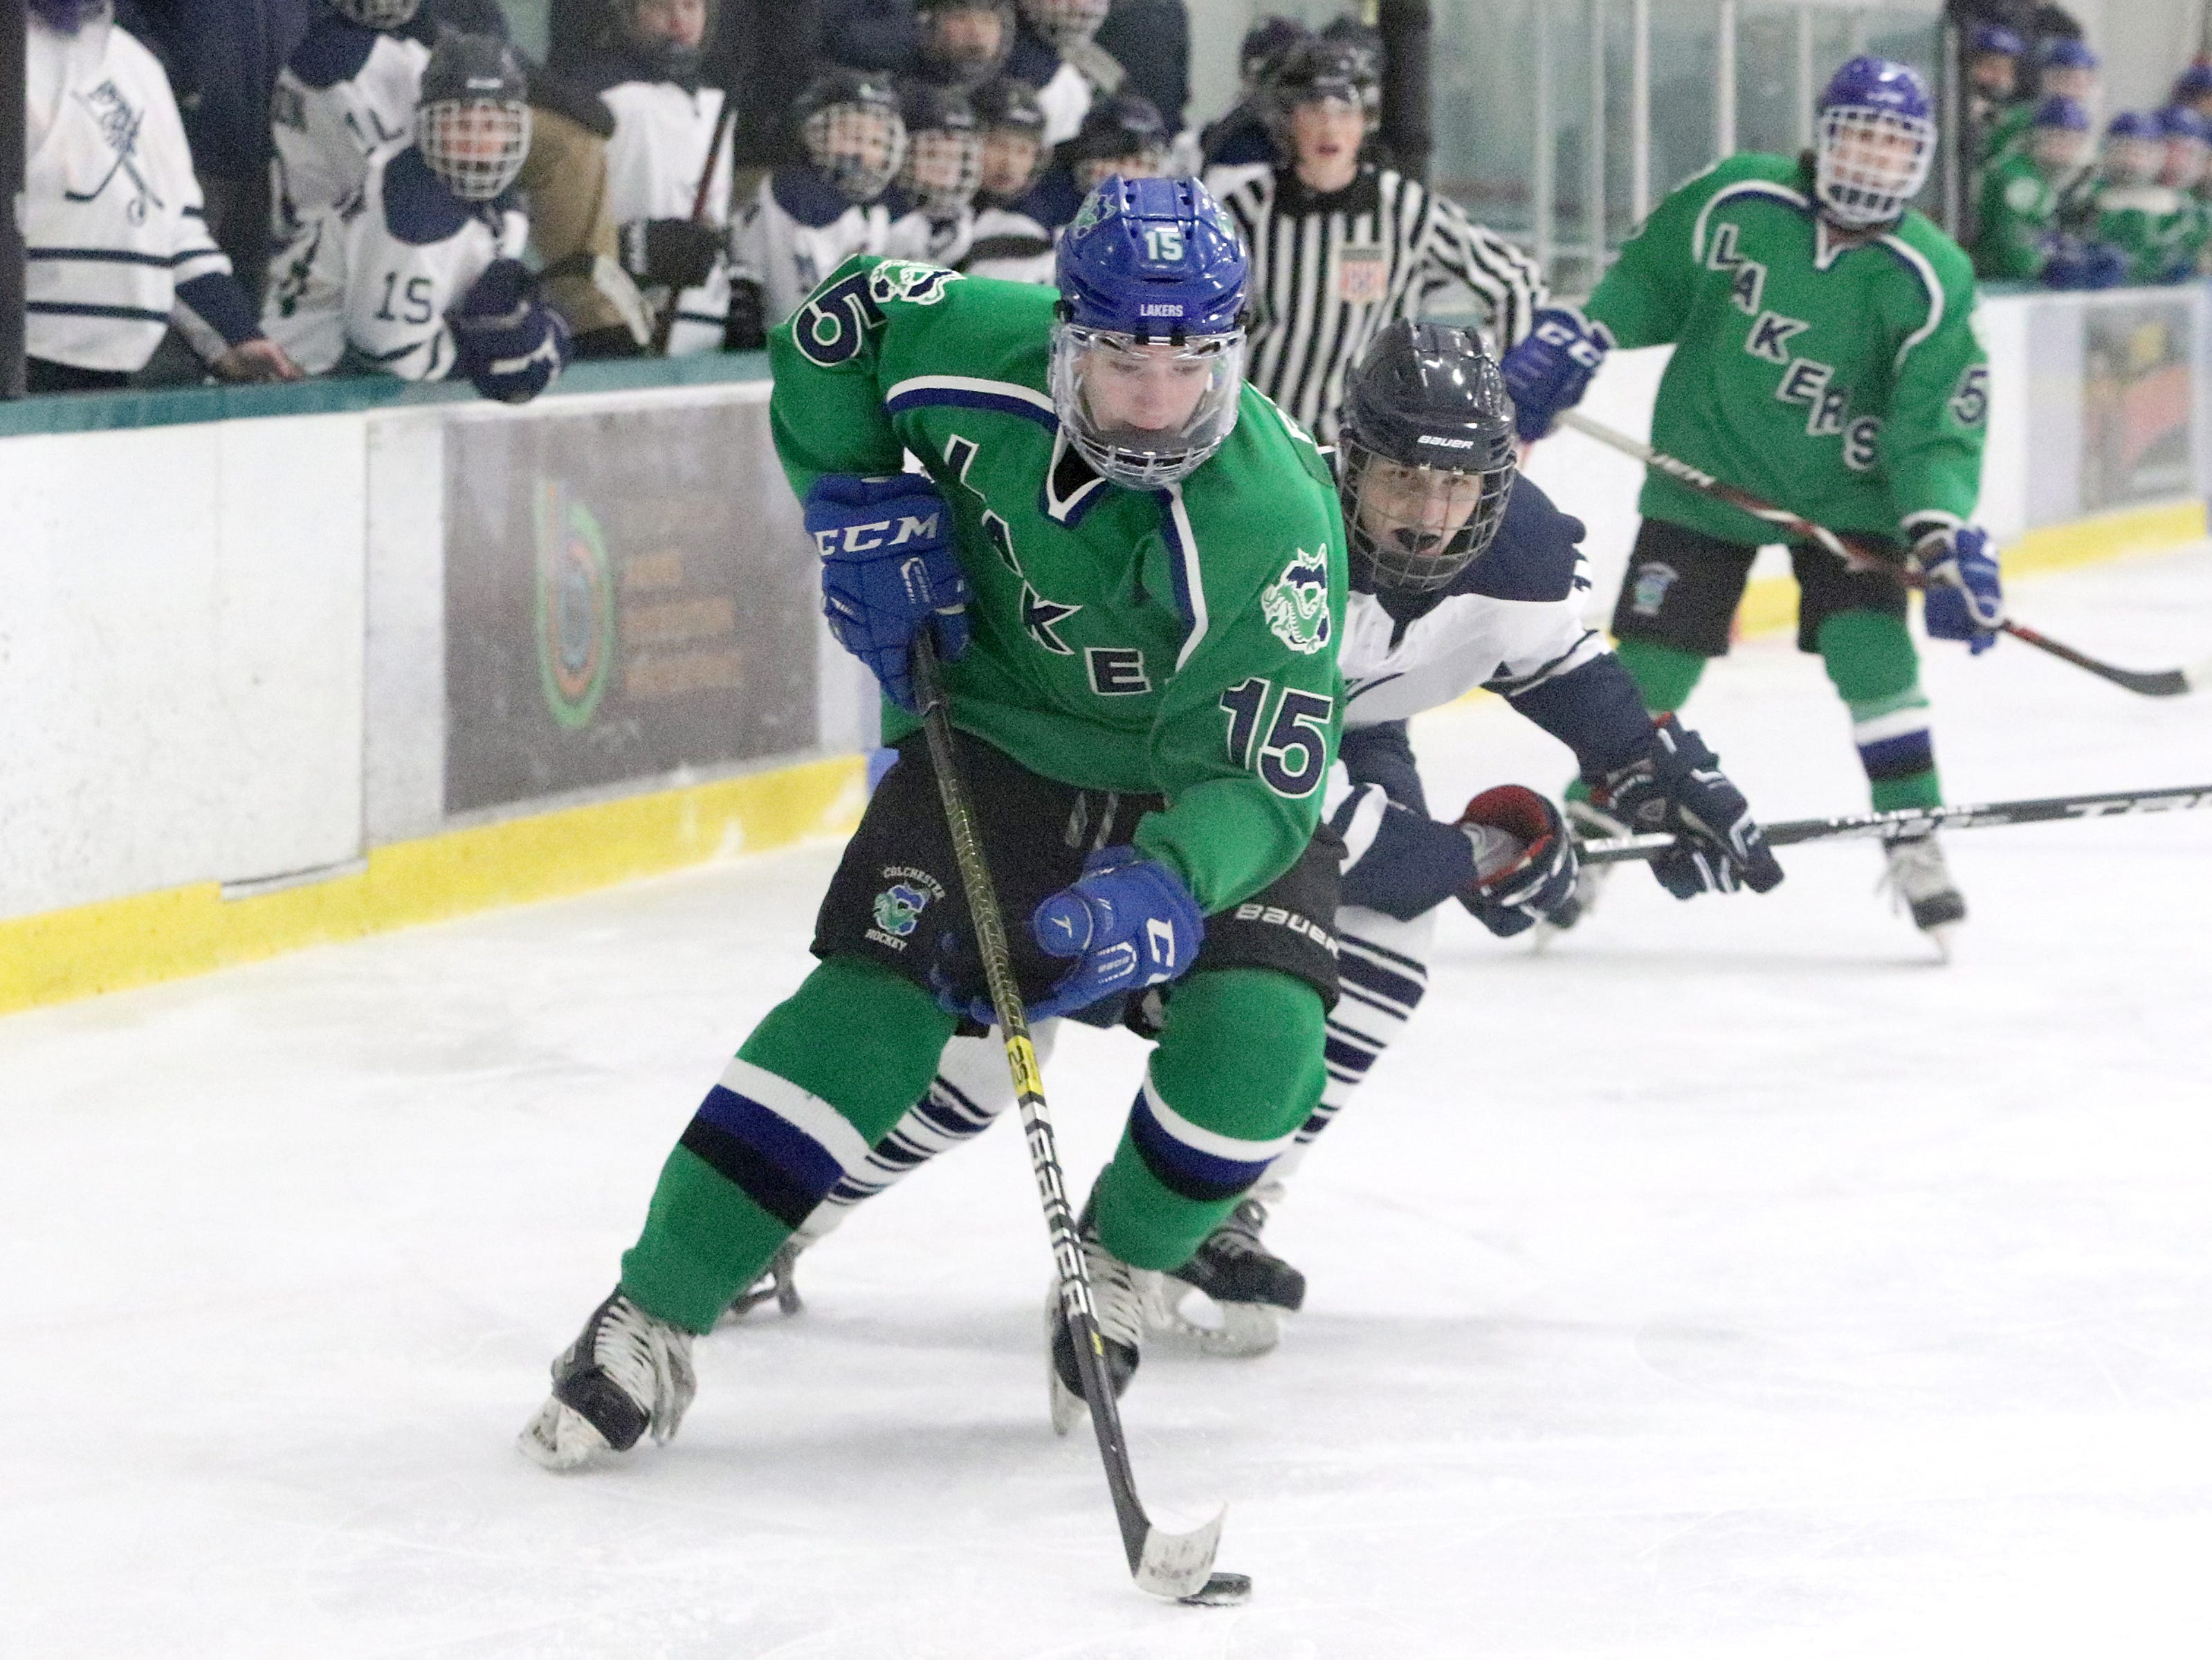 CHS defender Andy Rosato pushes the puck up the ice during the Lakers 6-0 win over BHS on Saturday. Rosato netted two of the LAker goals in the runaway win.